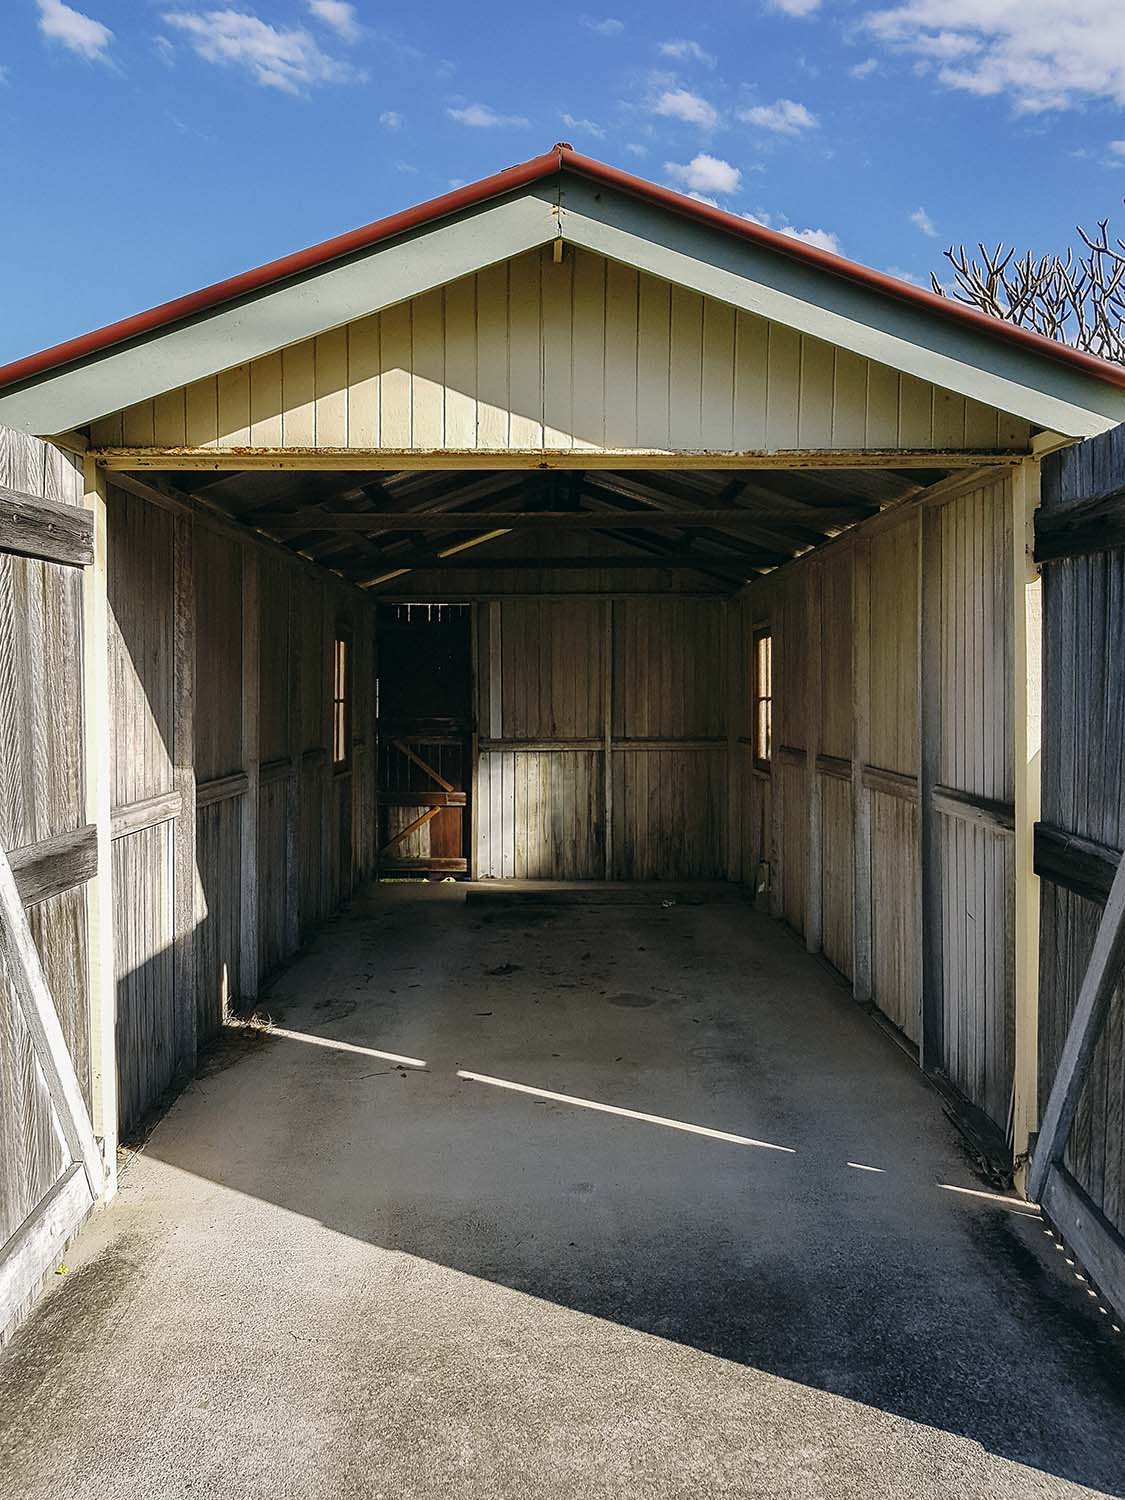 boar-shed_web.jpg